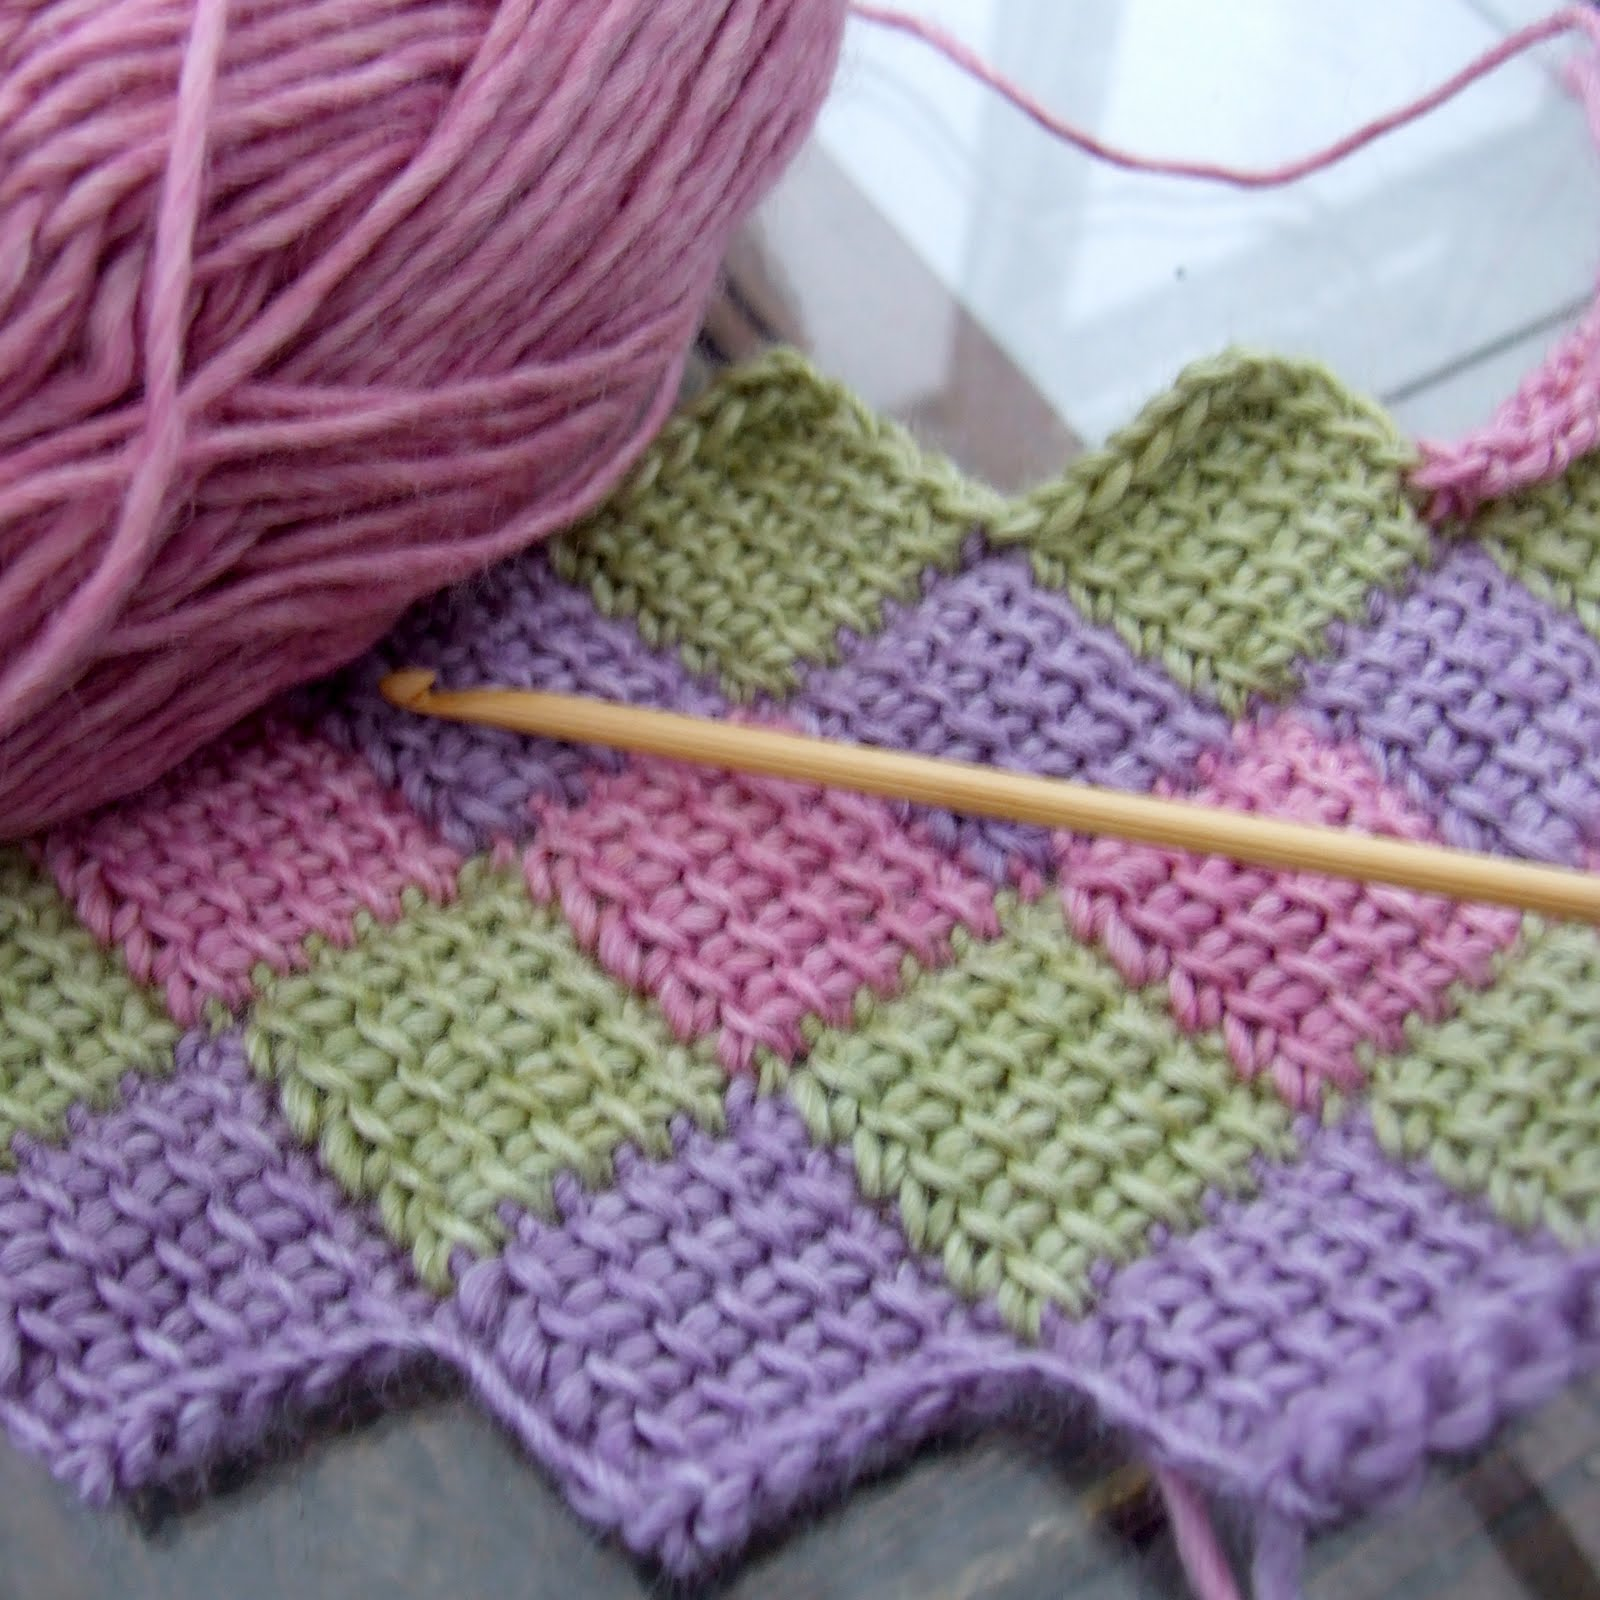 Crochet Entrelac : ... crochet entrelac gloves. I began crocheting straight away and here is